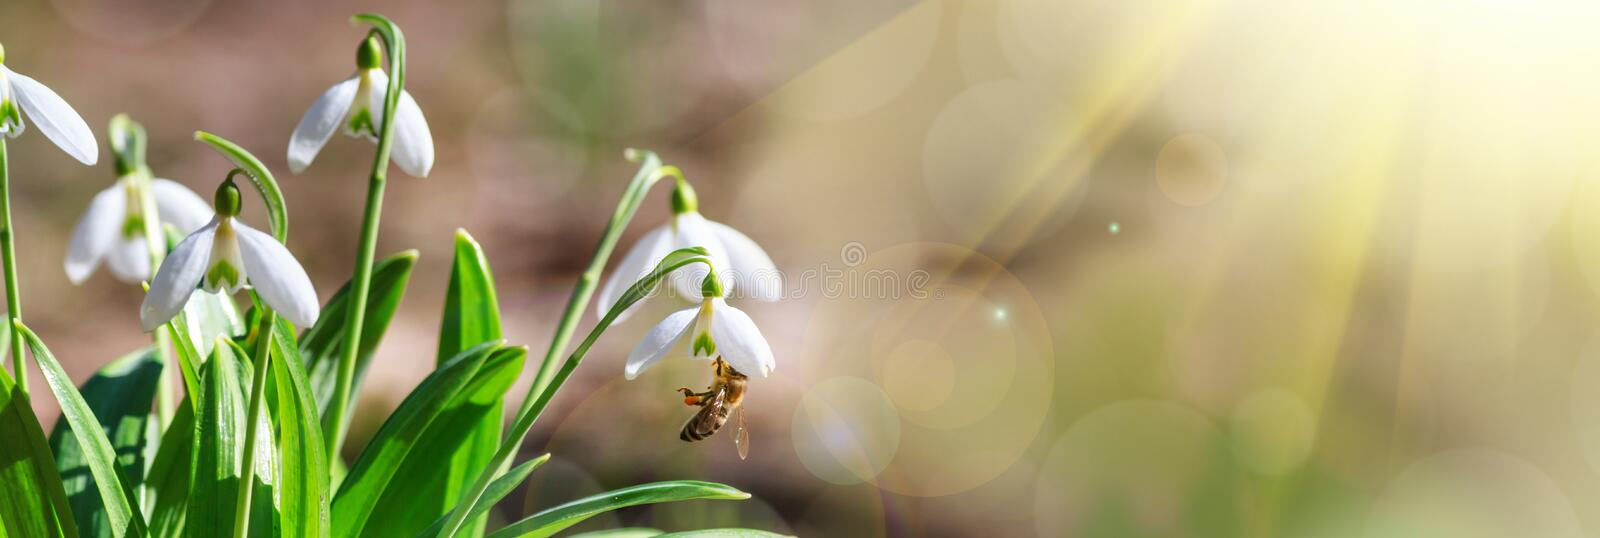 Blooming snowdrops Galanthus nivalis and their pollinating honey bee in early spring in the forest stock image